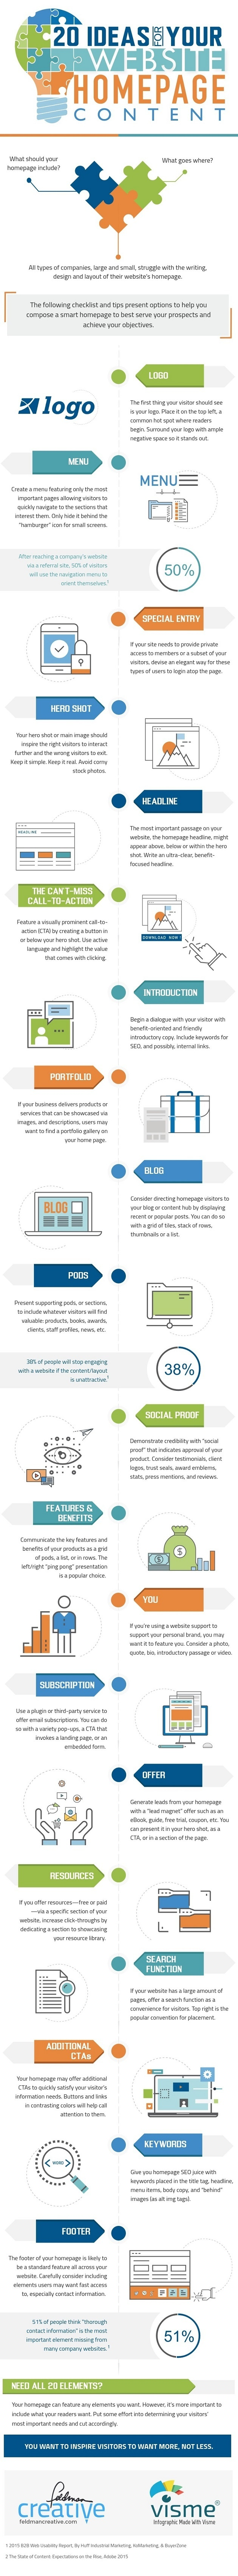 161101-20-ideas-for-your-website-homepage-content-infographic.jpg